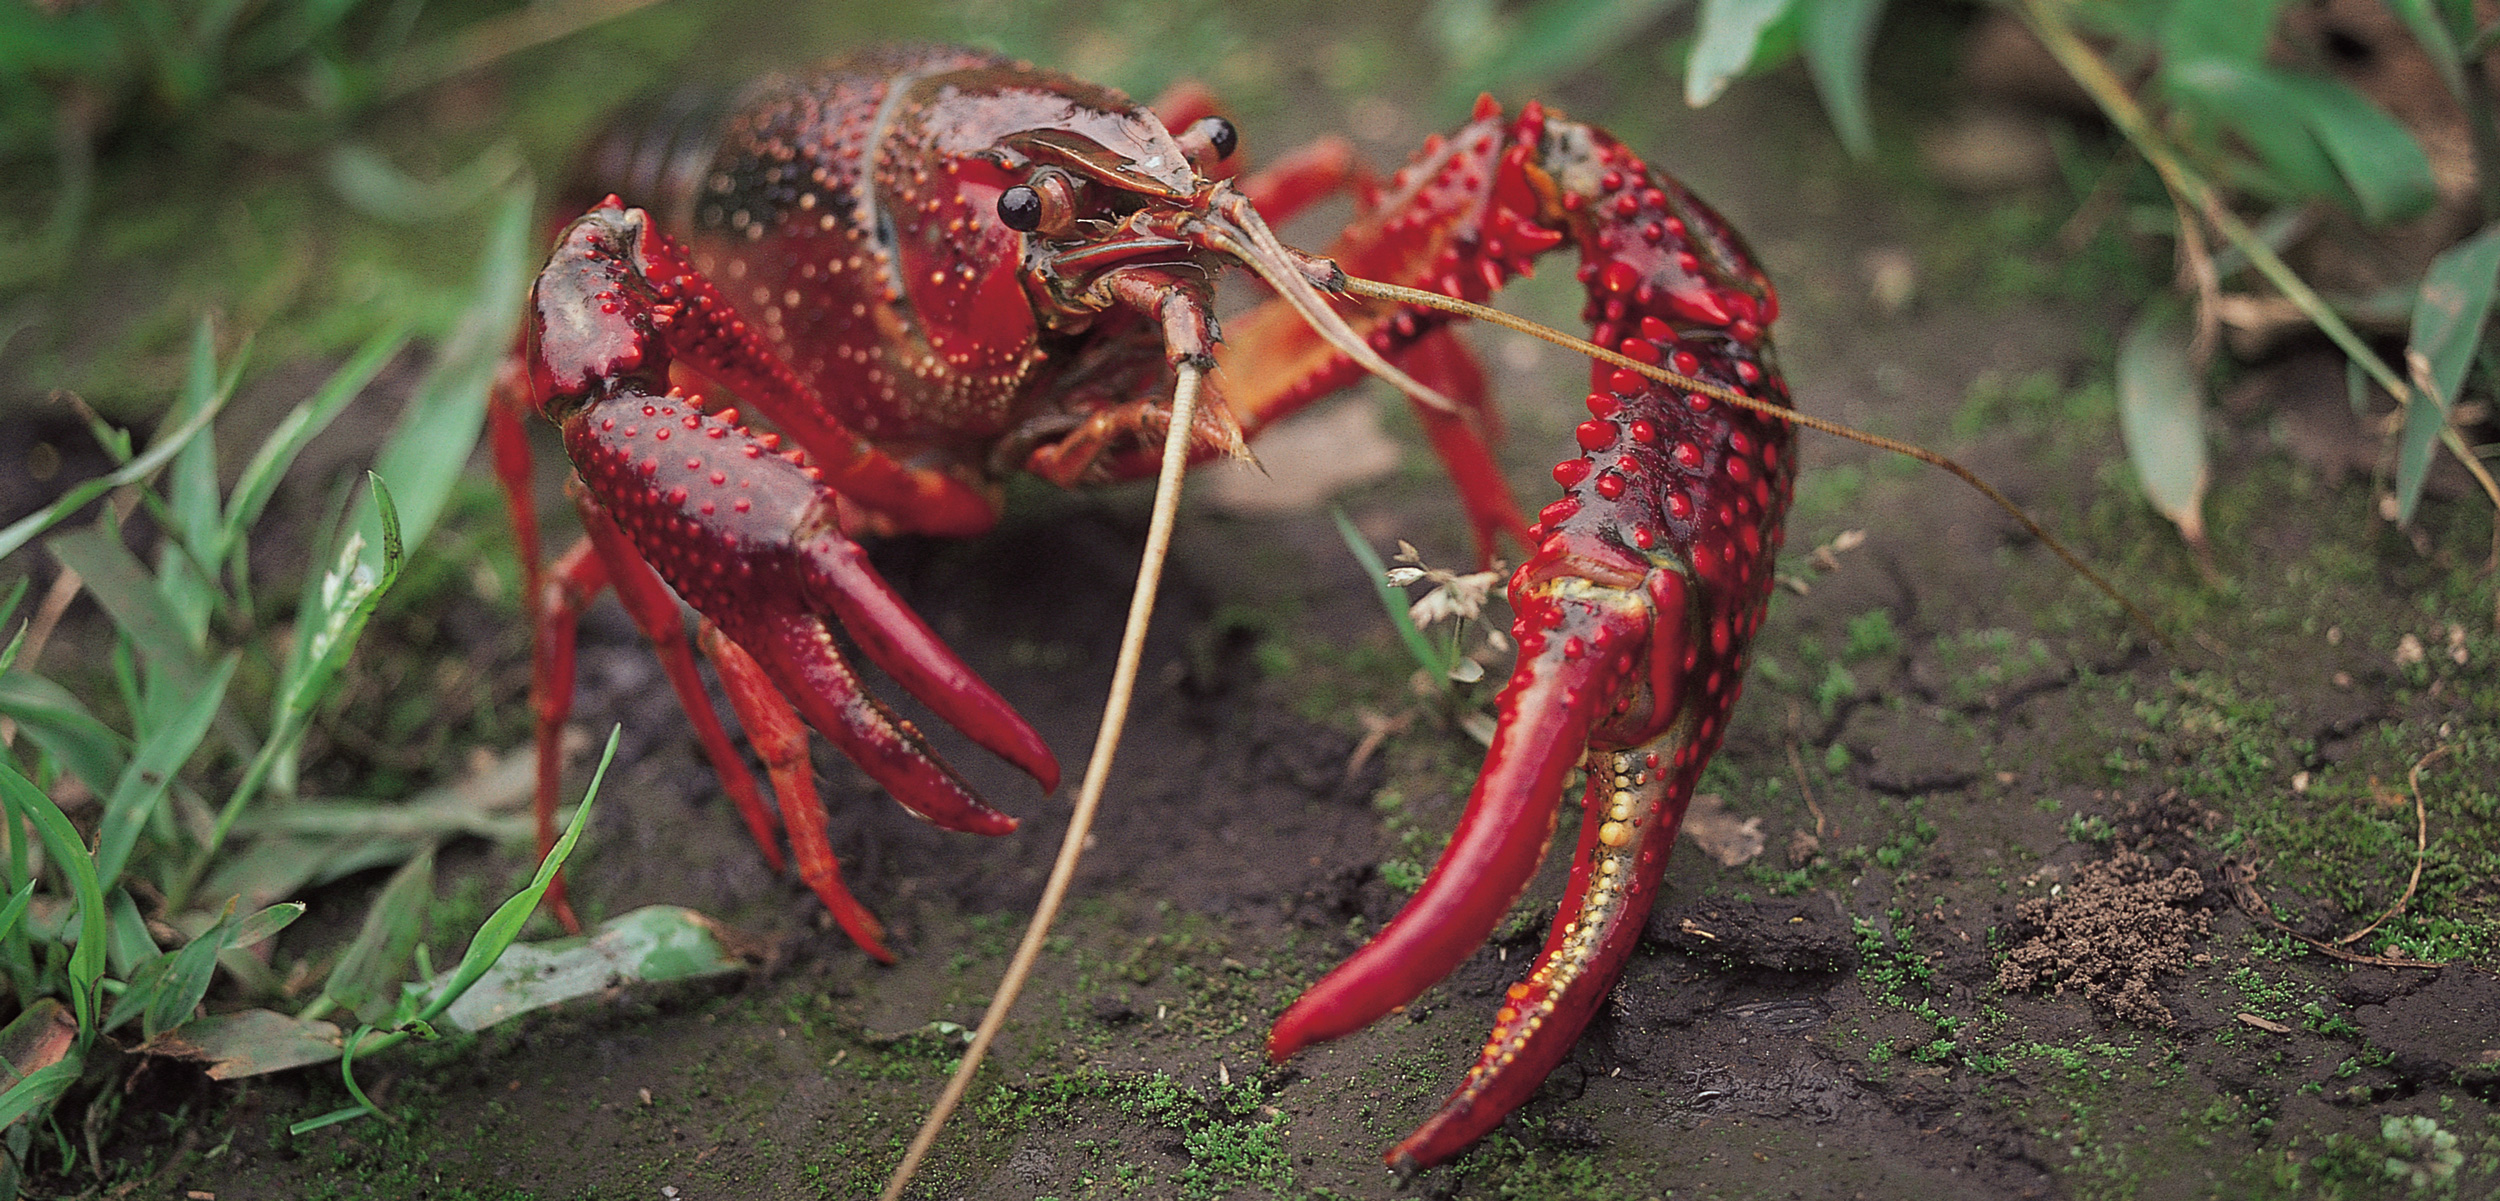 The red swamp is an invasive species of crayfish in Pine Lake, near Seattle, Washington. Photo by Modoki Masuda/Minden Pictures